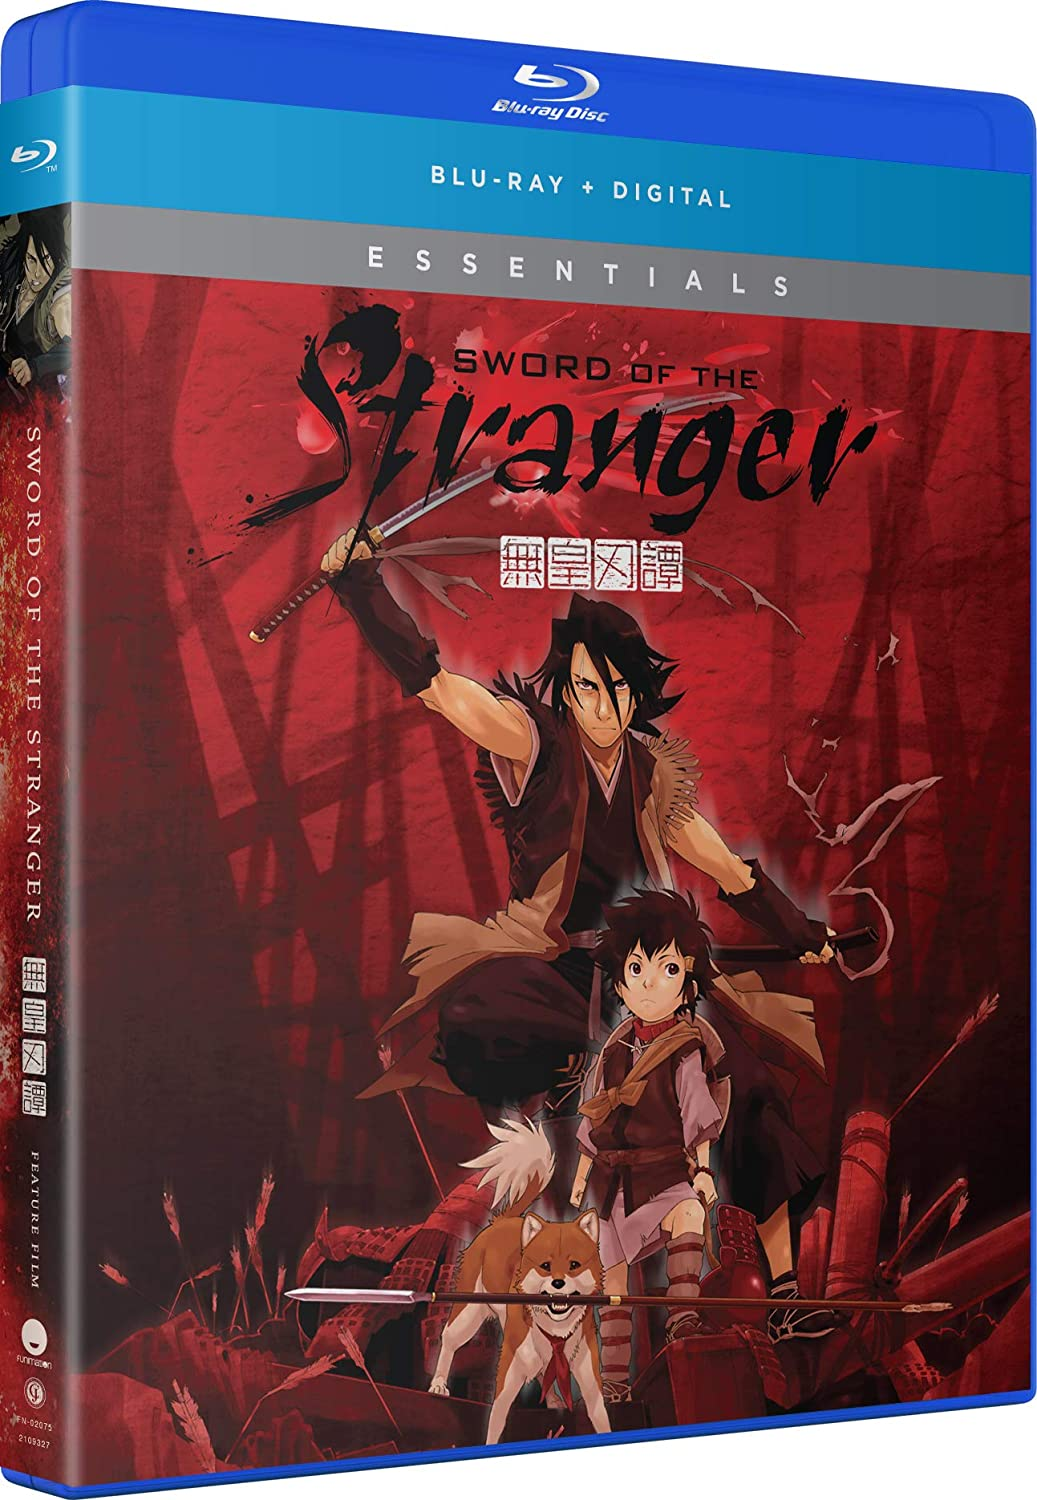 Sword of the Stranger Essentials Blu-ray (Dual Audio)